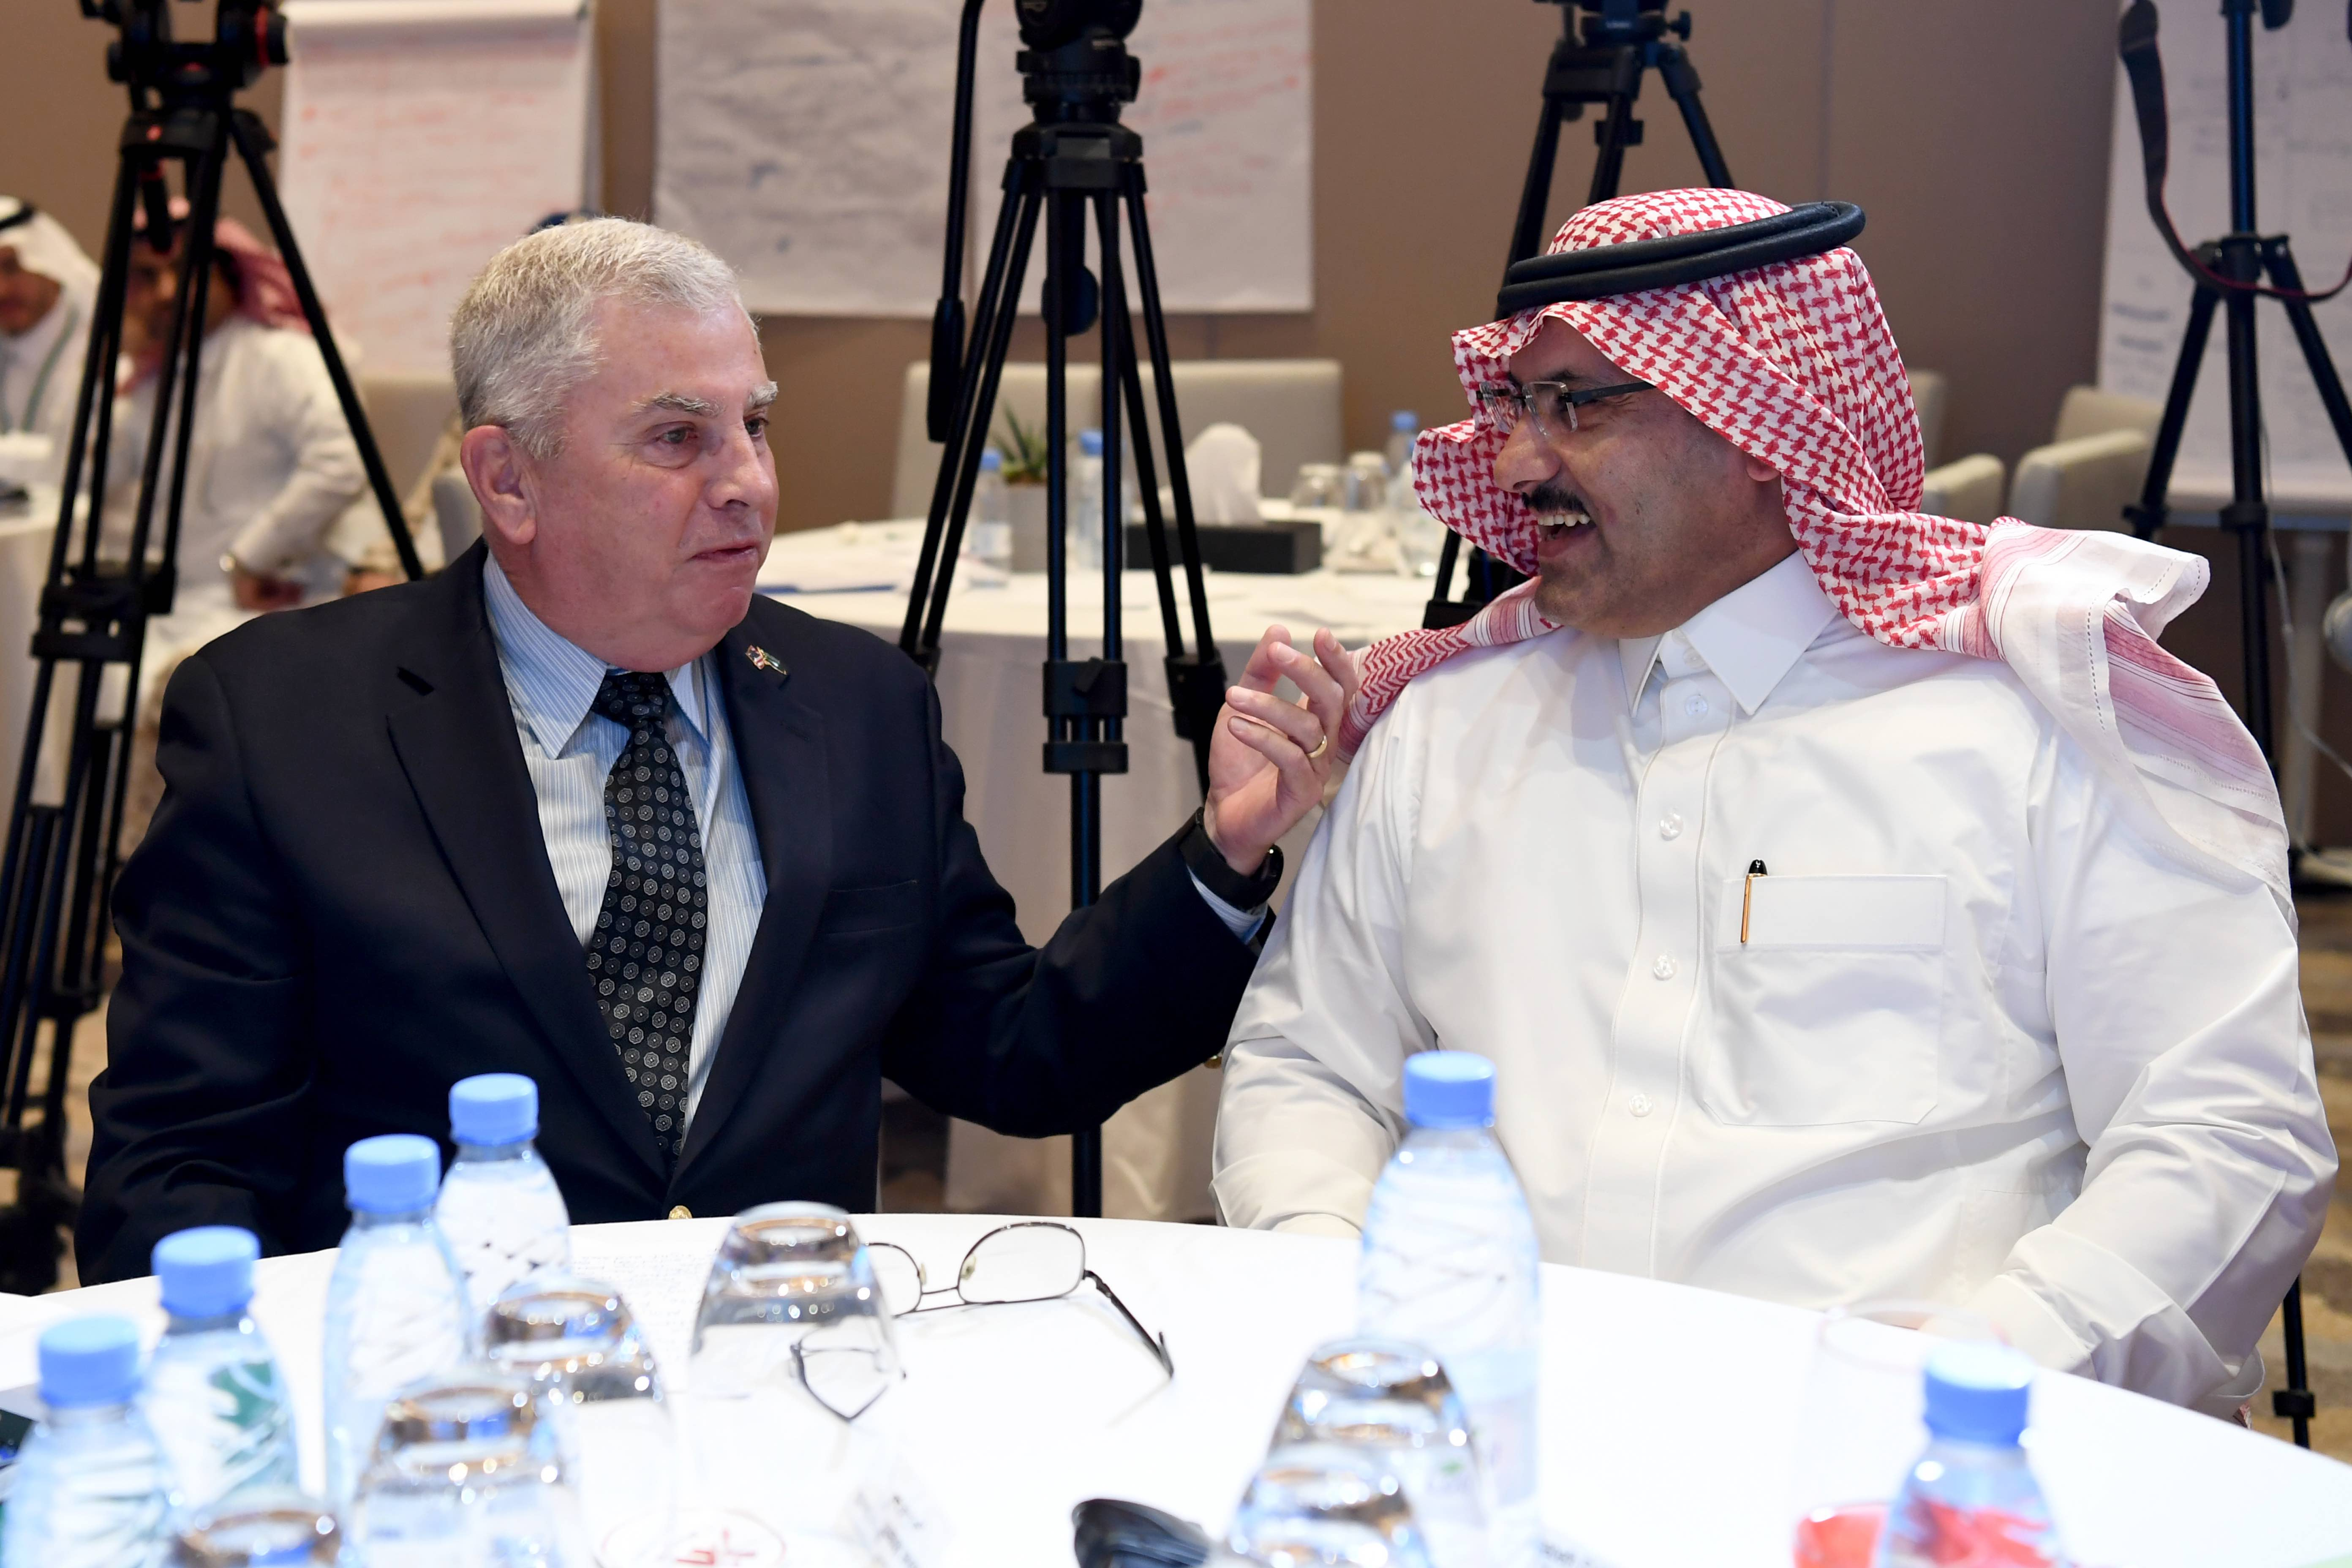 US Ambassador to Saudi Arabia John Abizaid (L) with Saudi Ambassador to Yemen Mohammed bin Saeed Al Jabir at the 'Stabilization 2' Workshop in Riyadh, Saudi Arabia